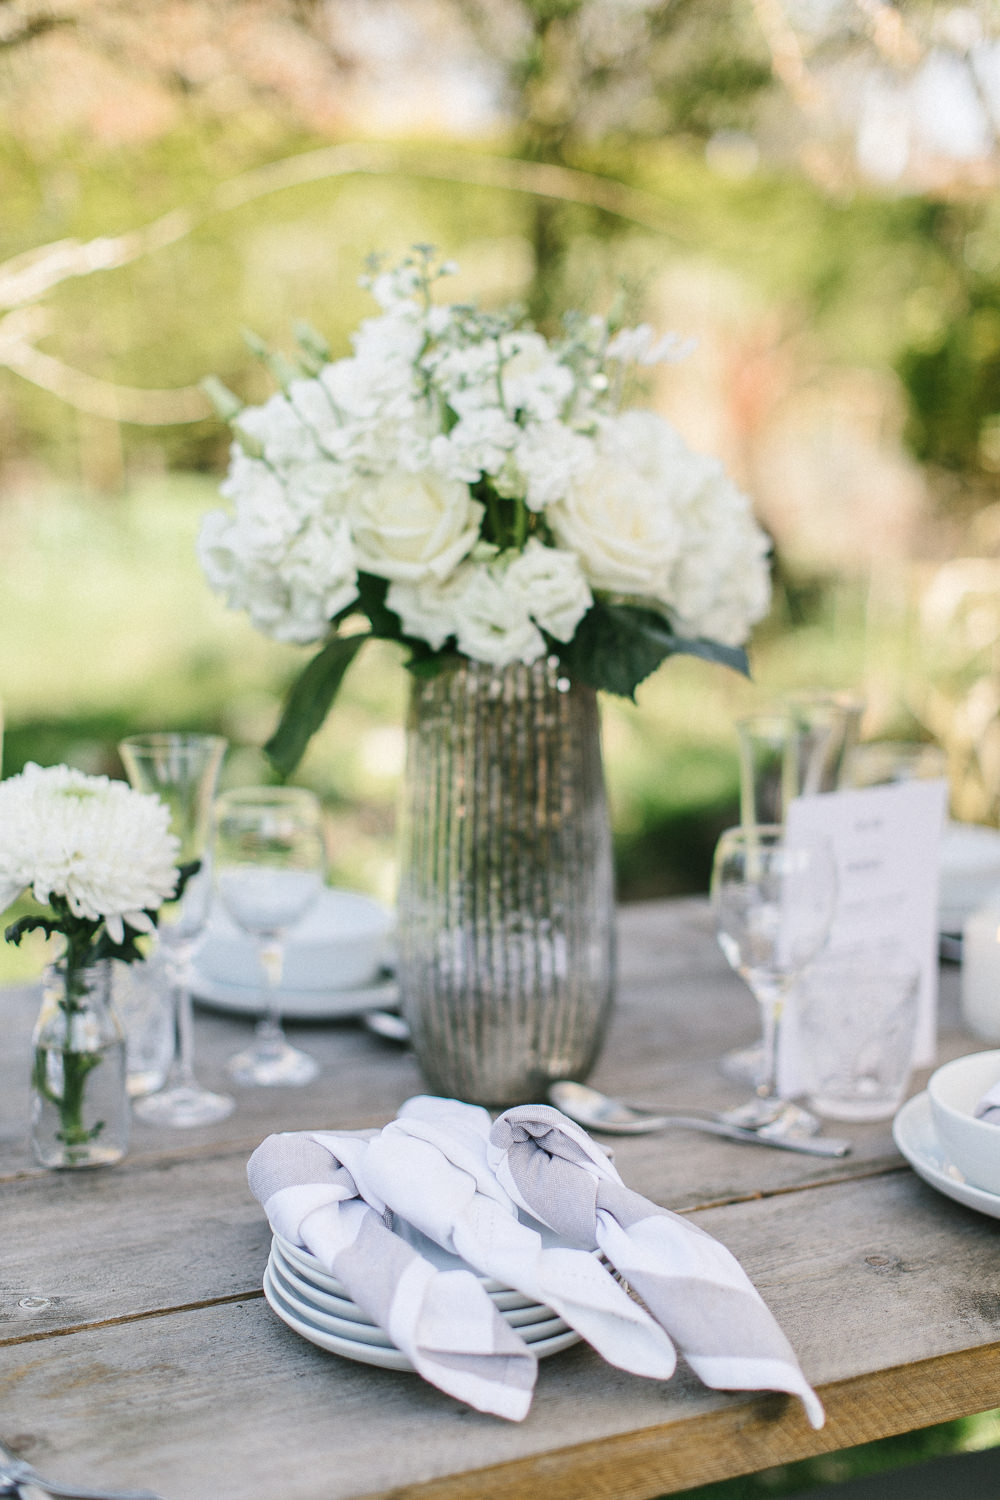 Wedding Decor From Sainsbury's Home For Your Big Day on taylor flowers, reed flowers, tesco flowers, sharp flowers, amazon flowers, clarke flowers, ikea flowers, monsoon flowers,